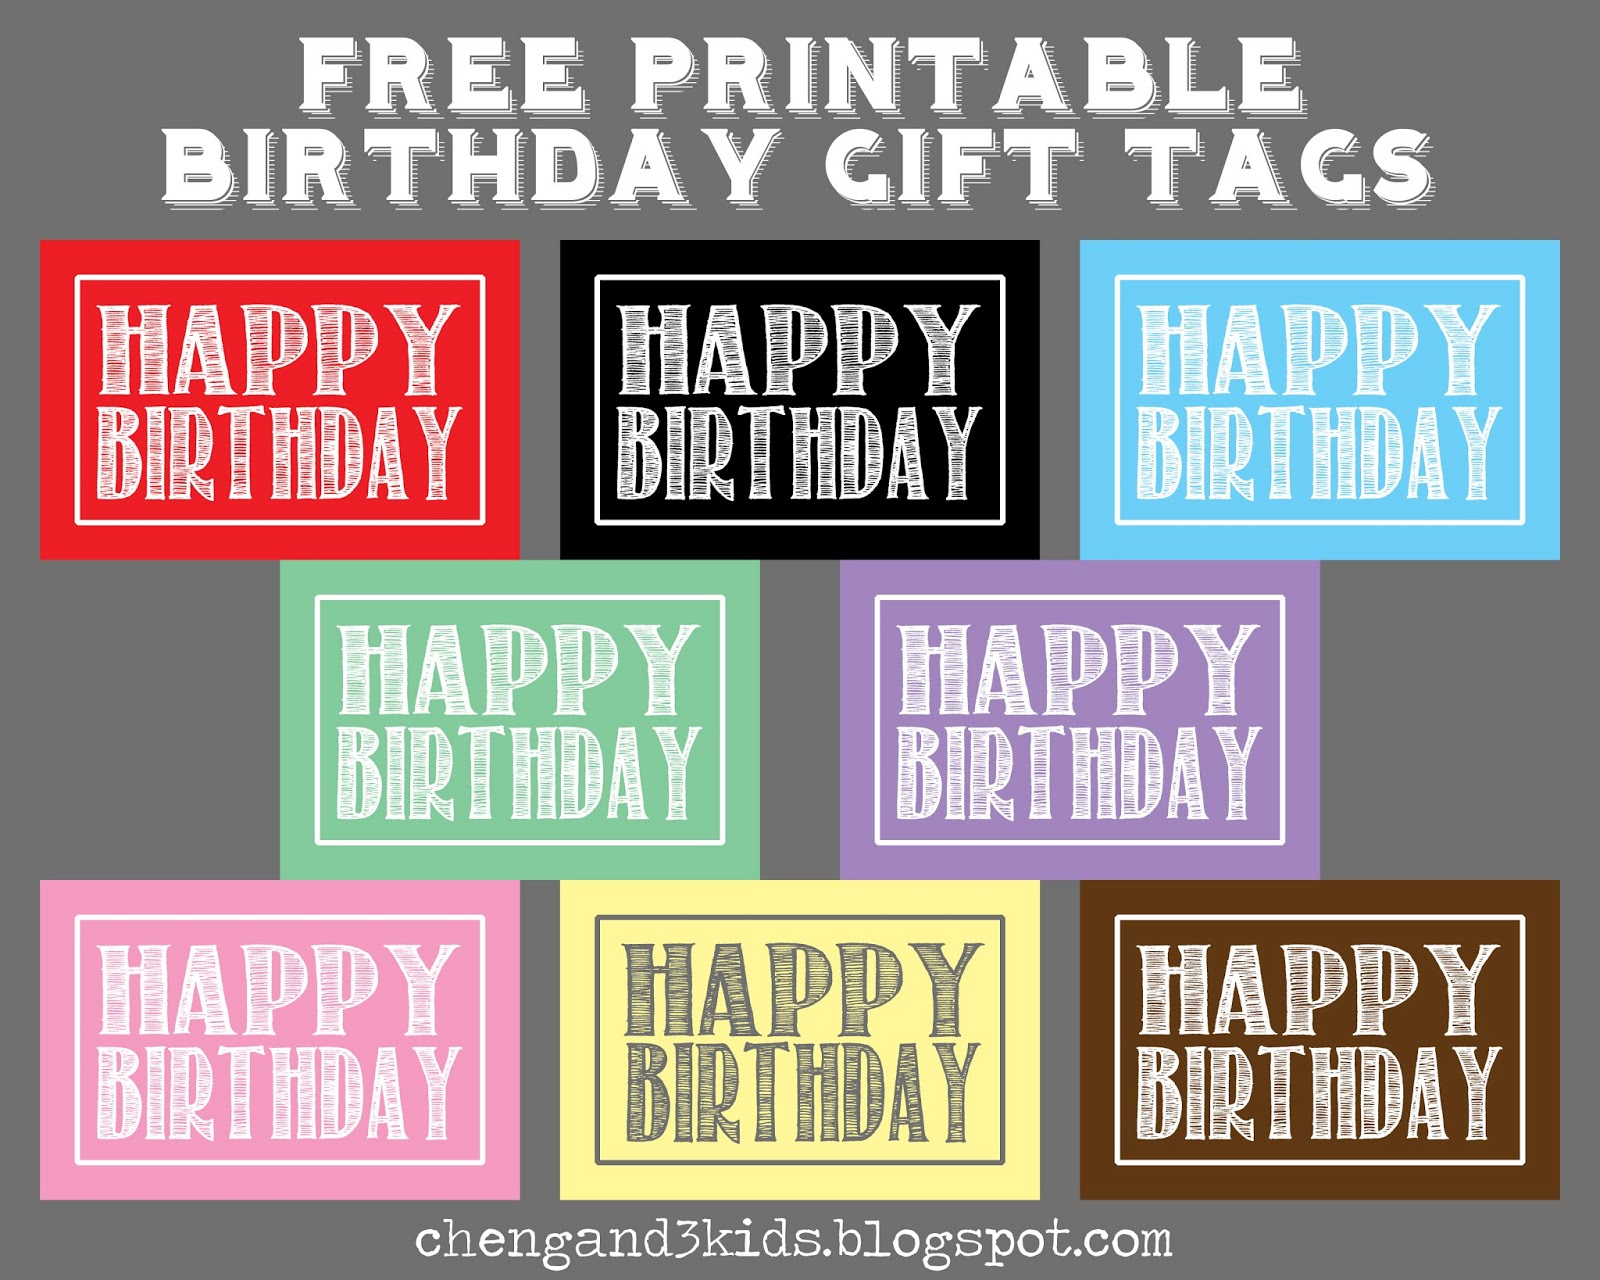 This is a picture of Zany Free Printable Birthday Gift Tags